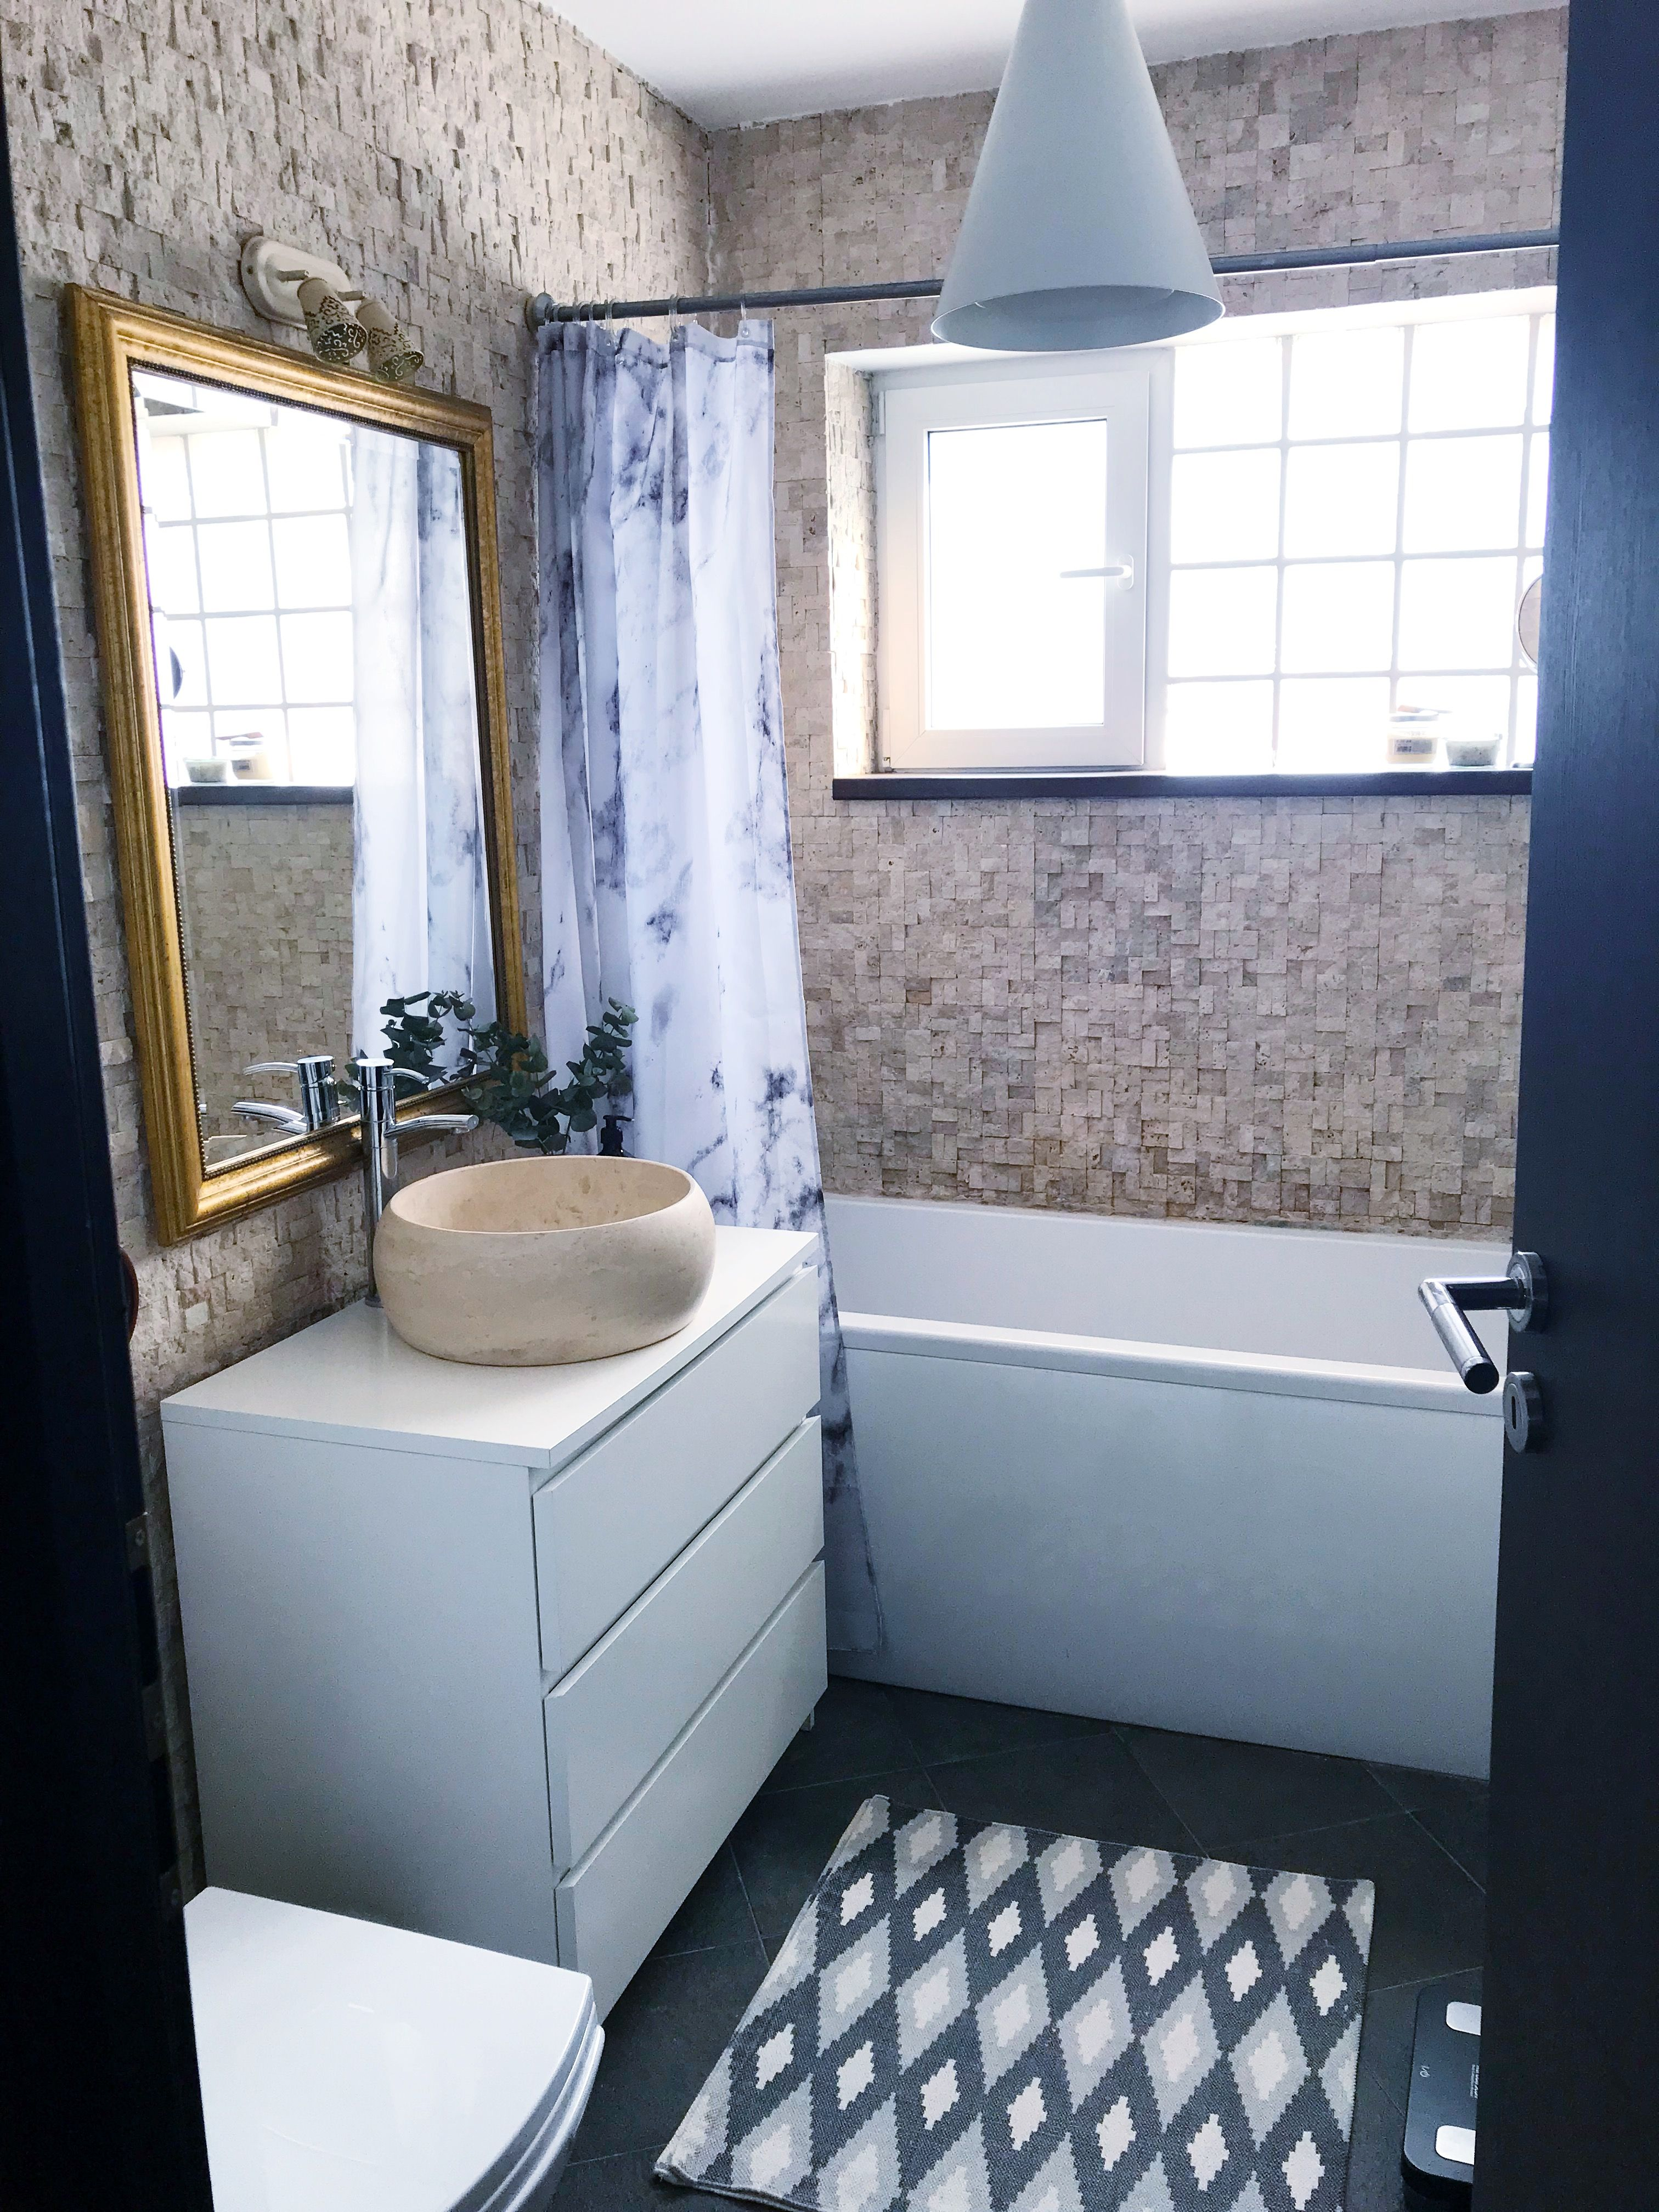 For Maximum Storage In Our Main Bathroom We Transformed An Ikea Malm Chest Of Drawers Into Our Sink Cabinet Works V Ikea Malm Kommode Badezimmer Malm Kommode